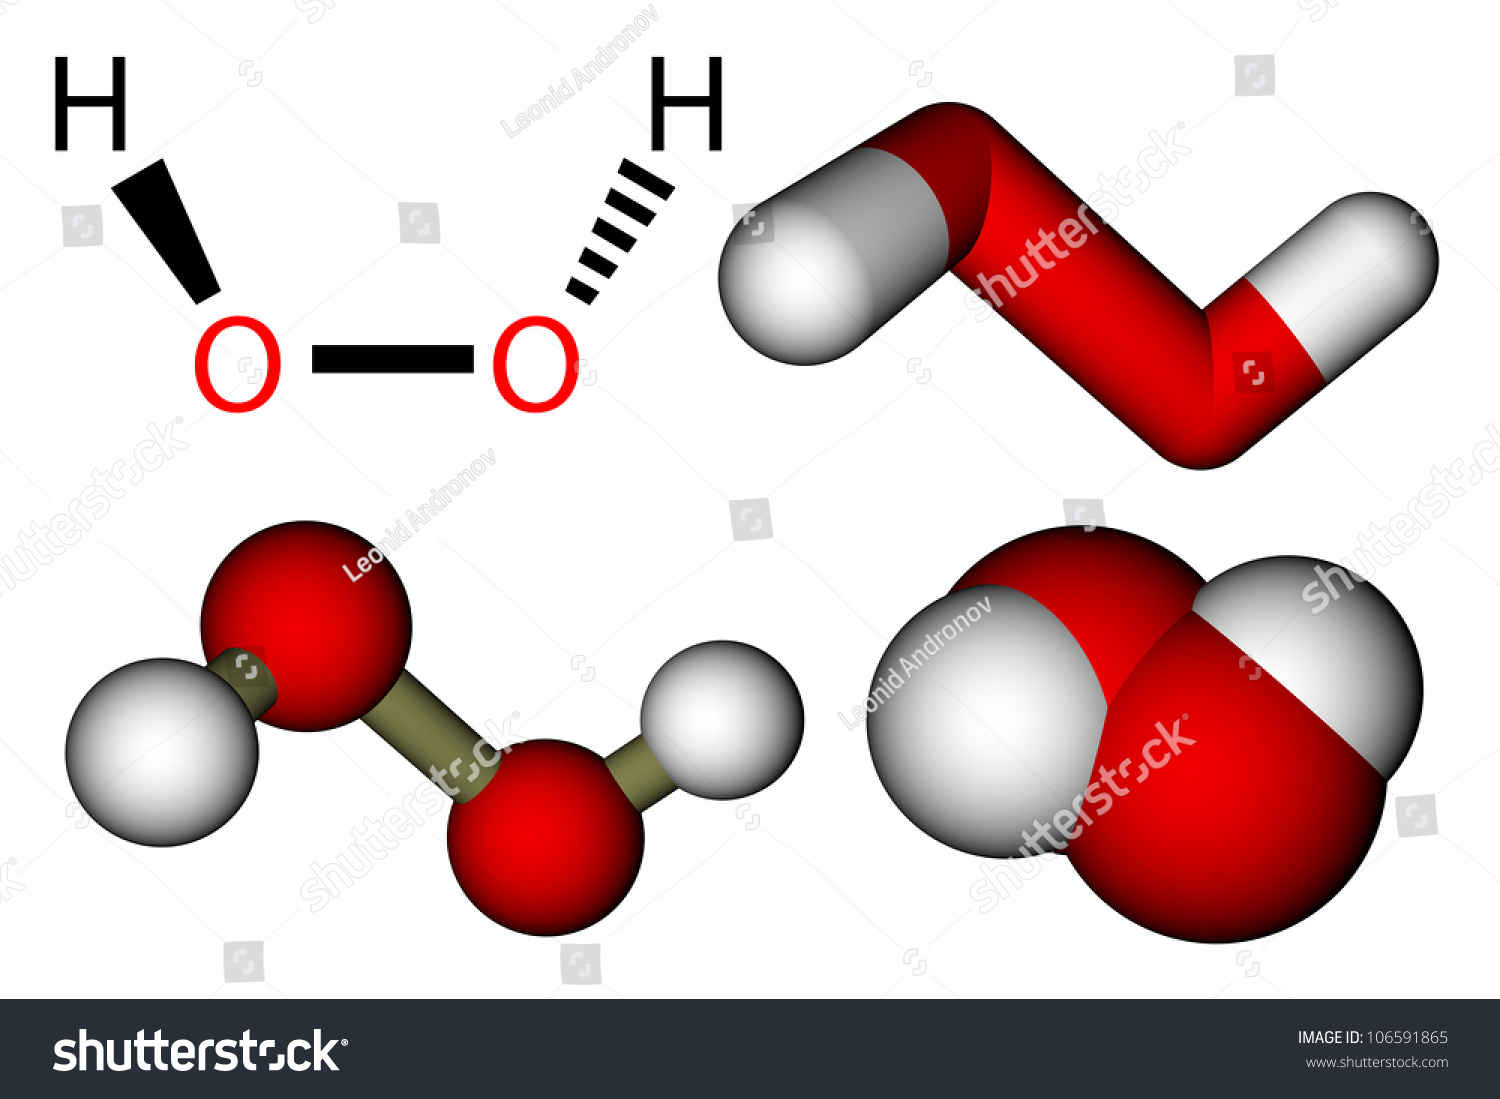 Hydrogen Peroxide  H2o2  Structural Formula And 3d Molecular Models Stock Photo 106591865